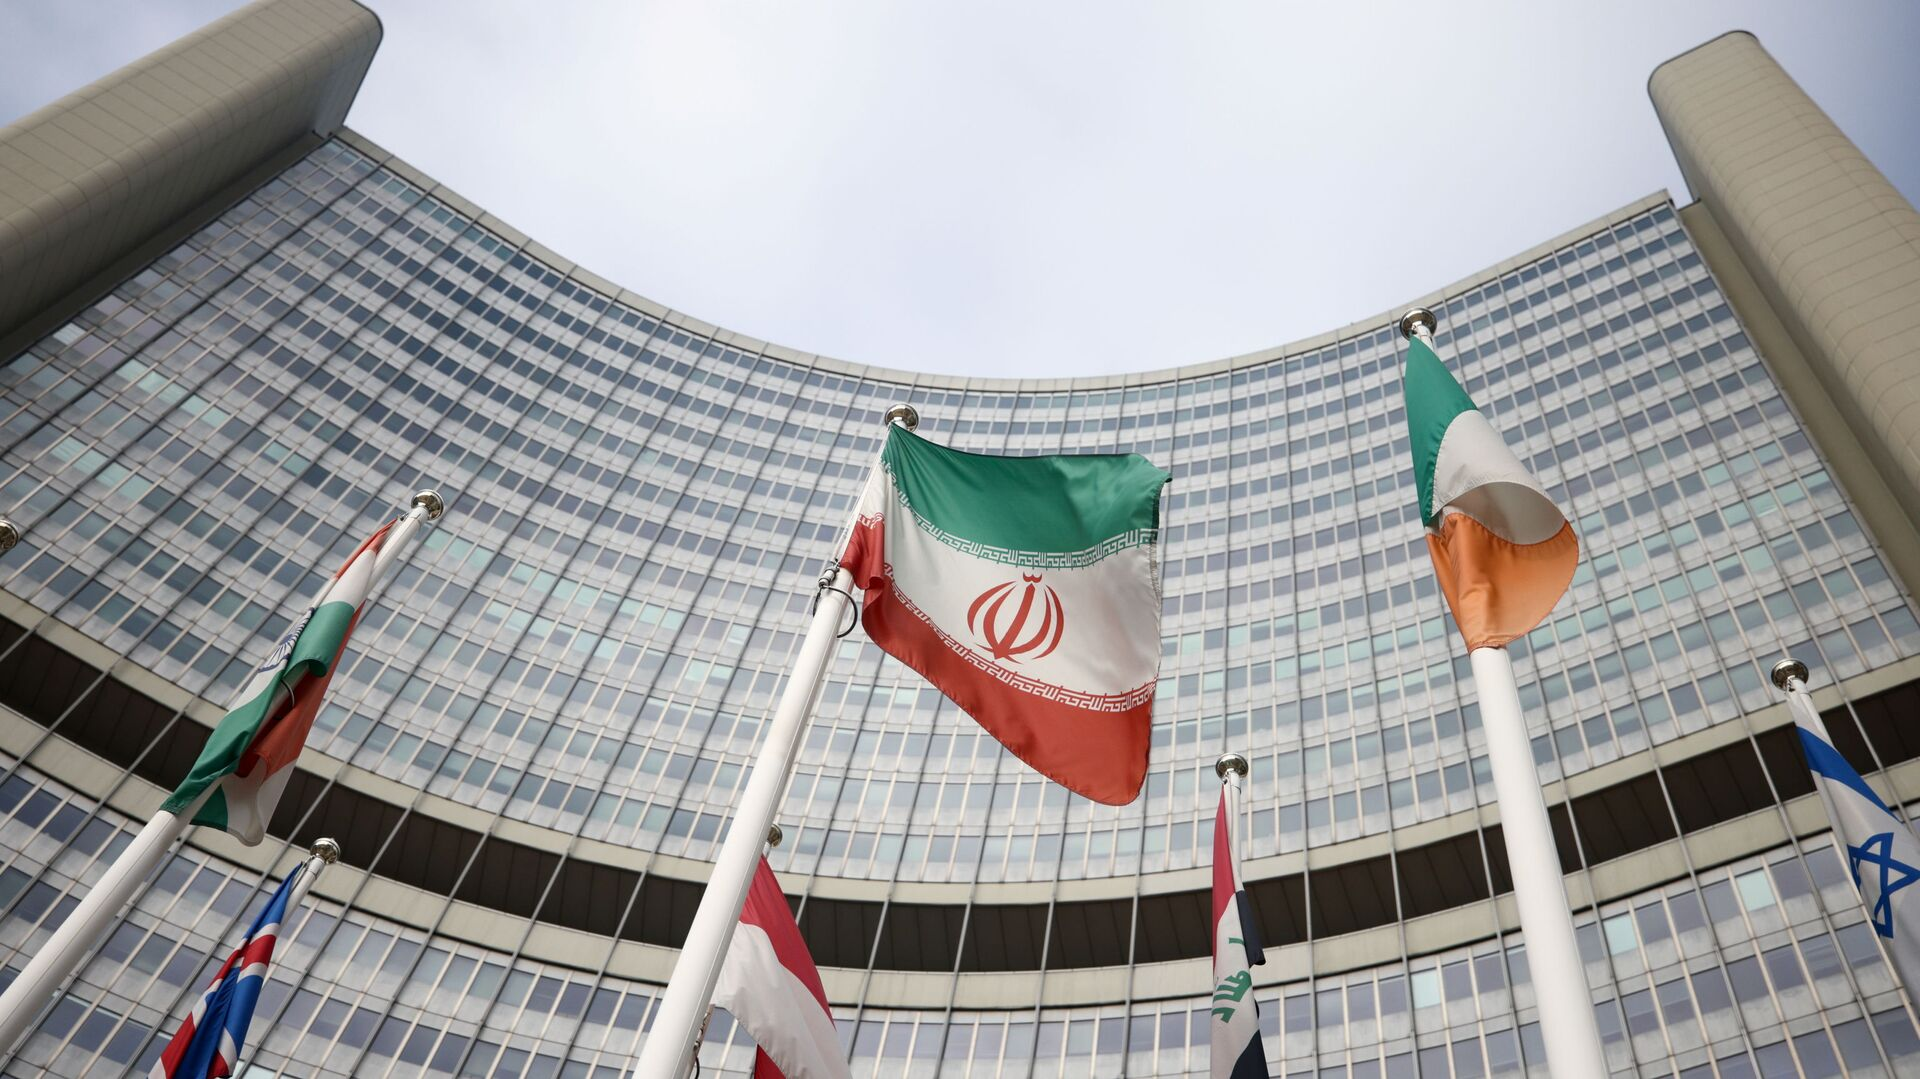 The Iranian flag waves in front of the International Atomic Energy Agency (IAEA) headquarters, amid the coronavirus disease (COVID-19) outbreak in Vienna, Austria, March 1, 2021. REUTERS/Lisi Niesner - Sputnik International, 1920, 27.09.2021